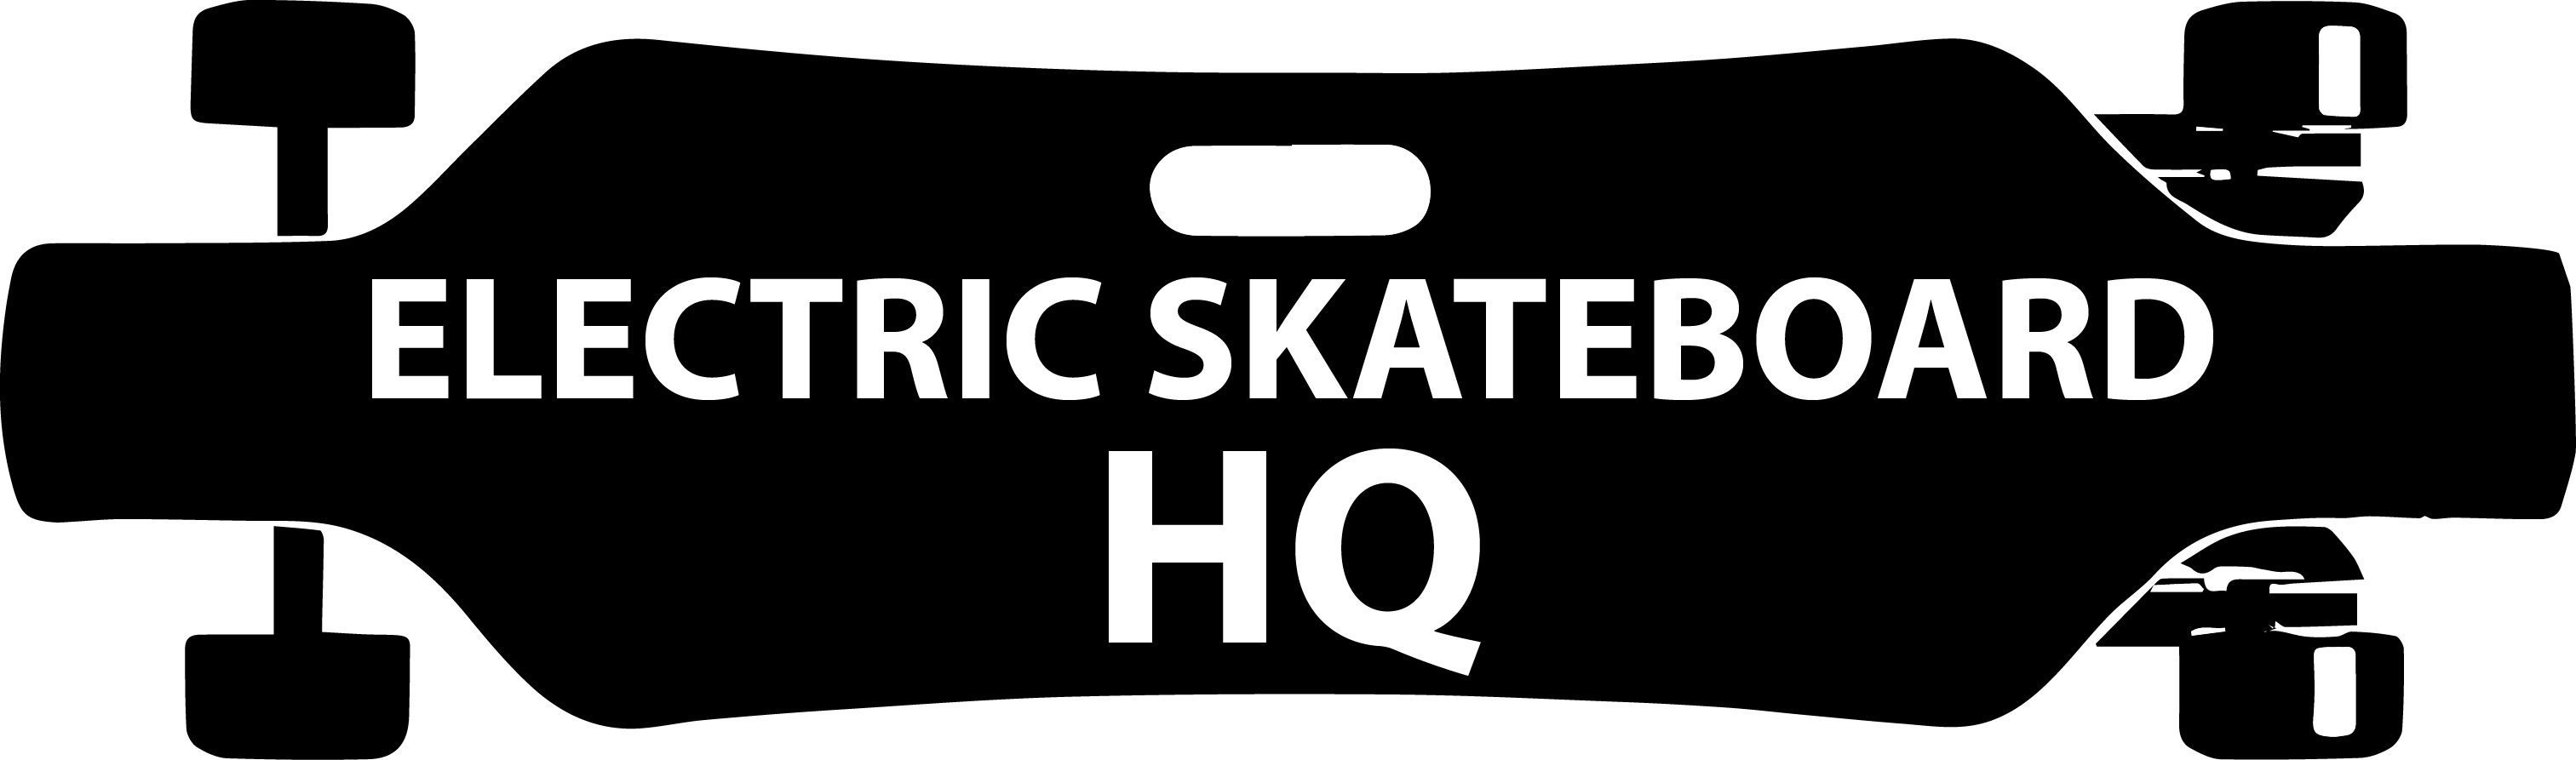 Electric Skateboard HQ